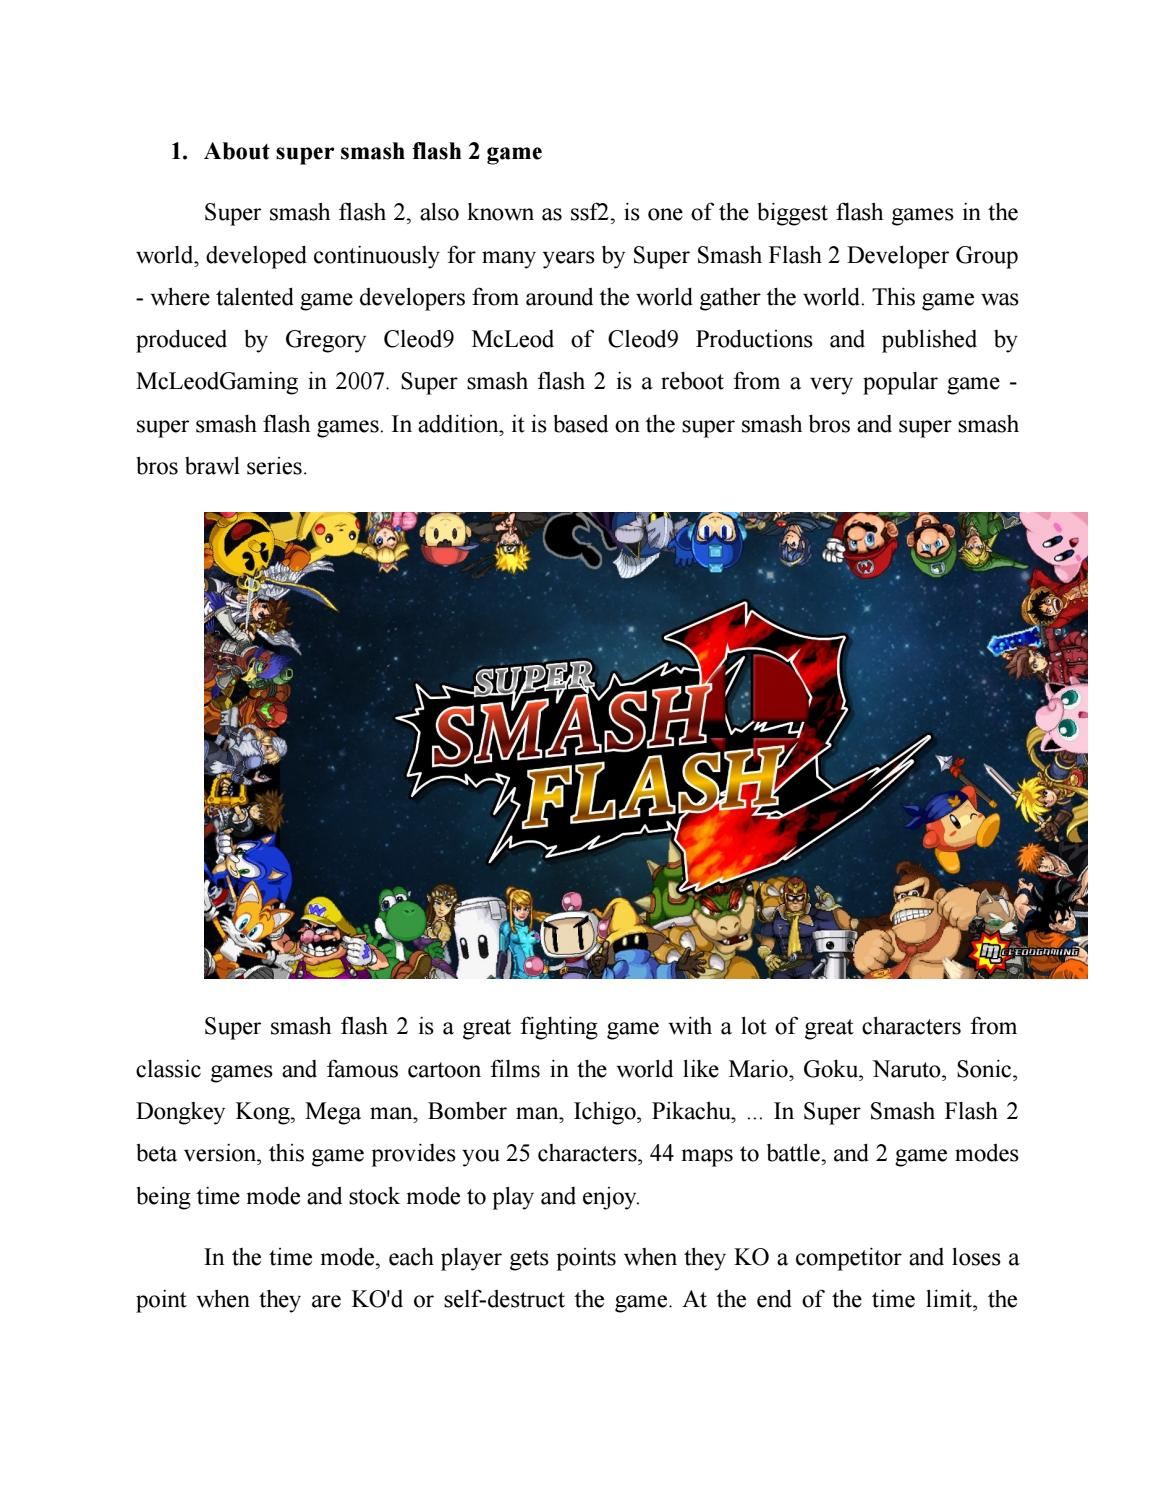 Detail information about game Super Smash Flash 2